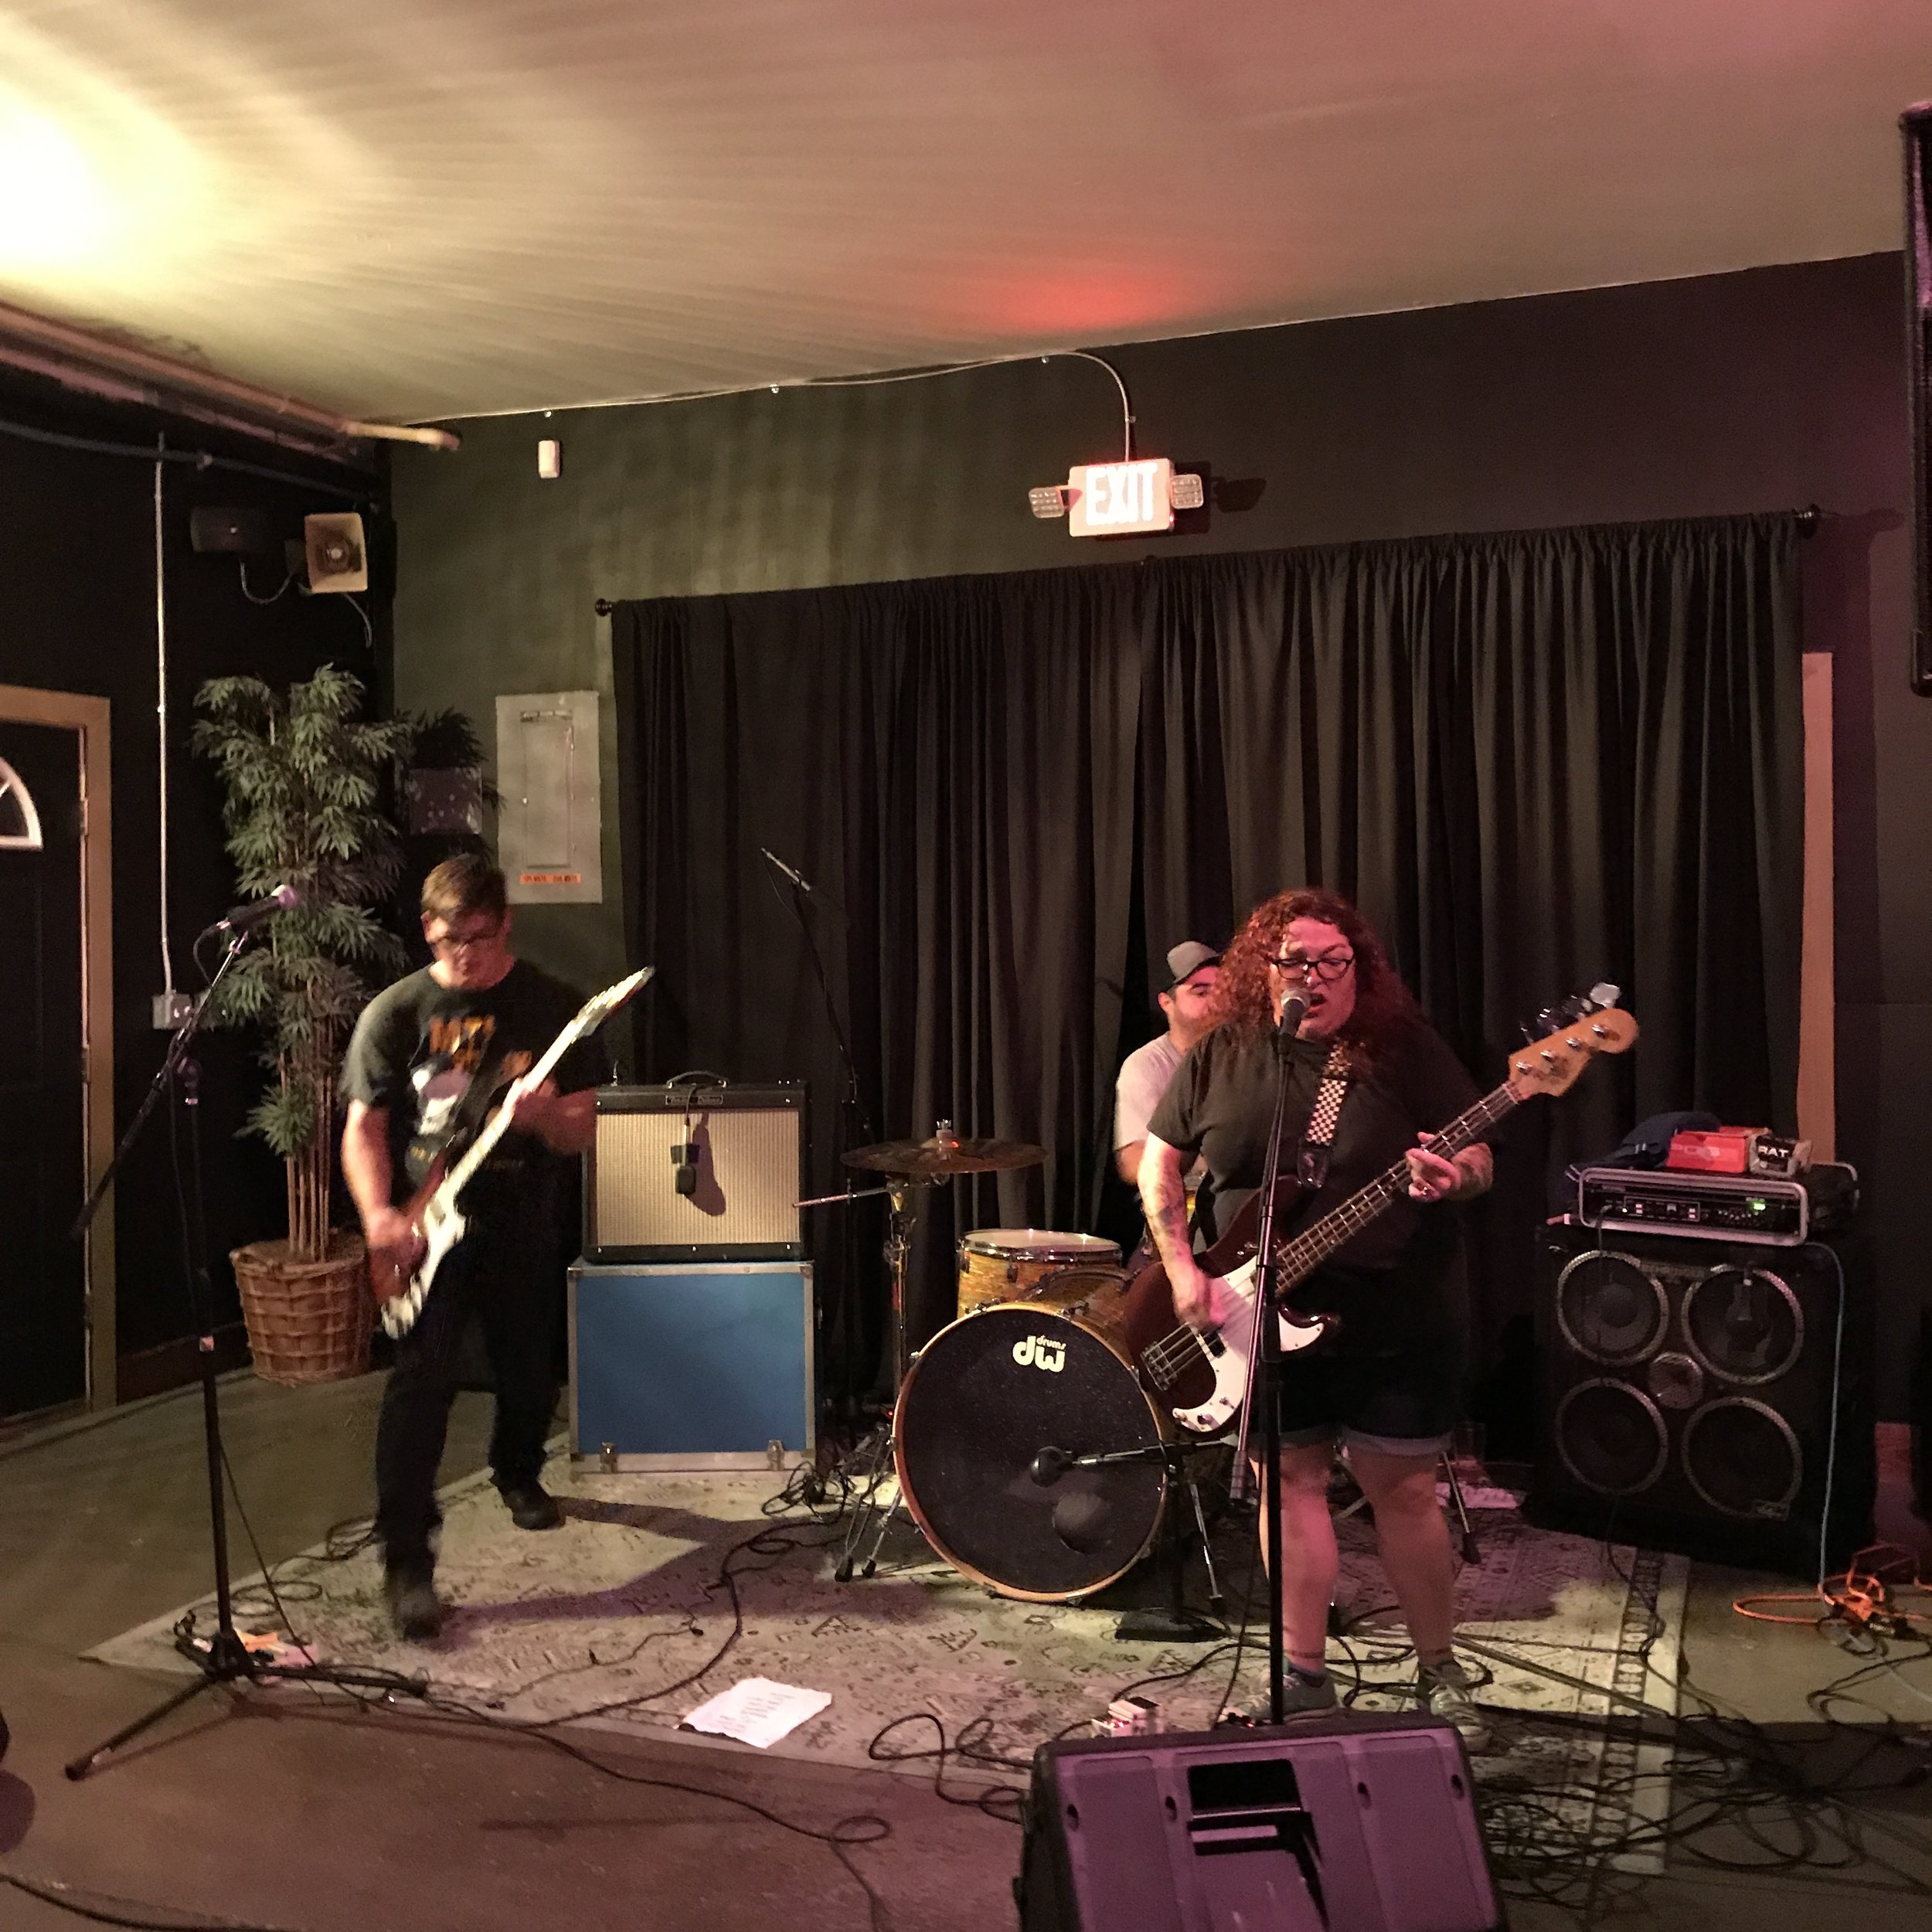 Erotic Novels, the band: Chris Tull (guitar), Bobby C. (drums) and Shannon Perez (bass and vocals) wowed the crowd with their powerful post-punk sound on Sunday, August 20.